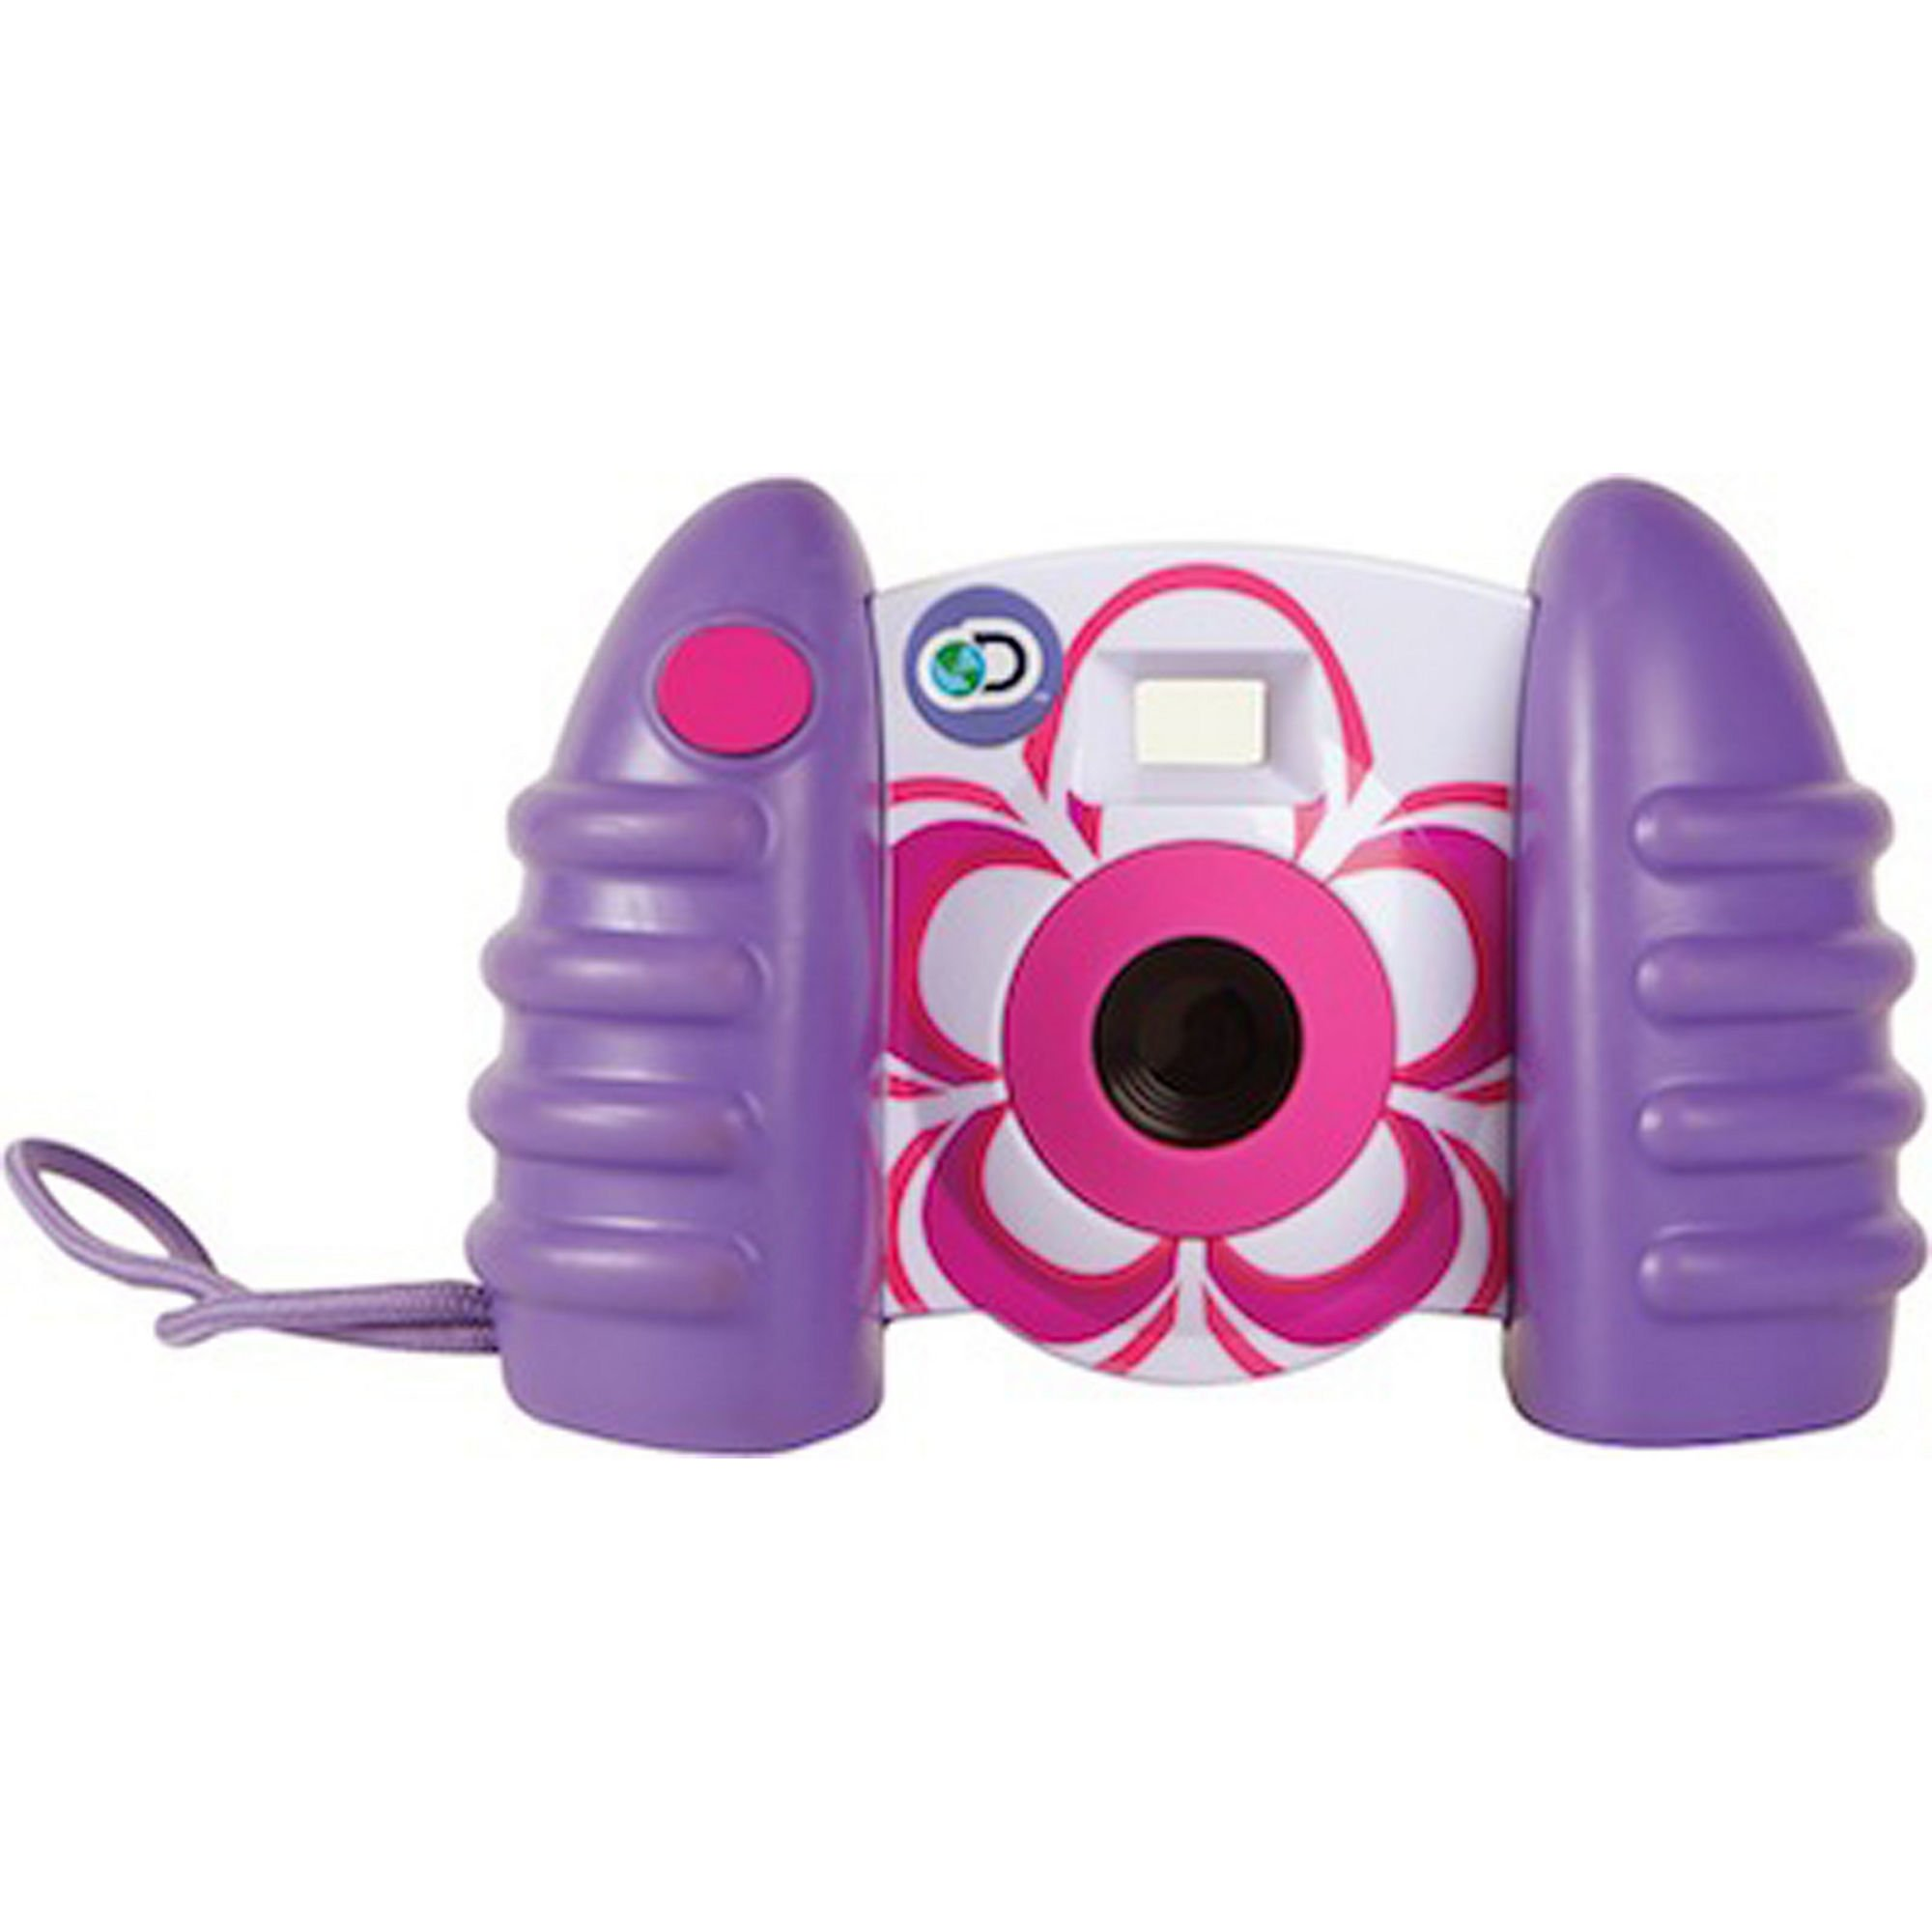 DISCOVERY KIDS USB Compatible Digital Camera, Comes With 1.5'' Color LCD Screen, Captures Photos And 50 Second Long Videos, 16 MB Storage For Up to 120 Images, Transfer Files W/Cable, PURPLE/PINK